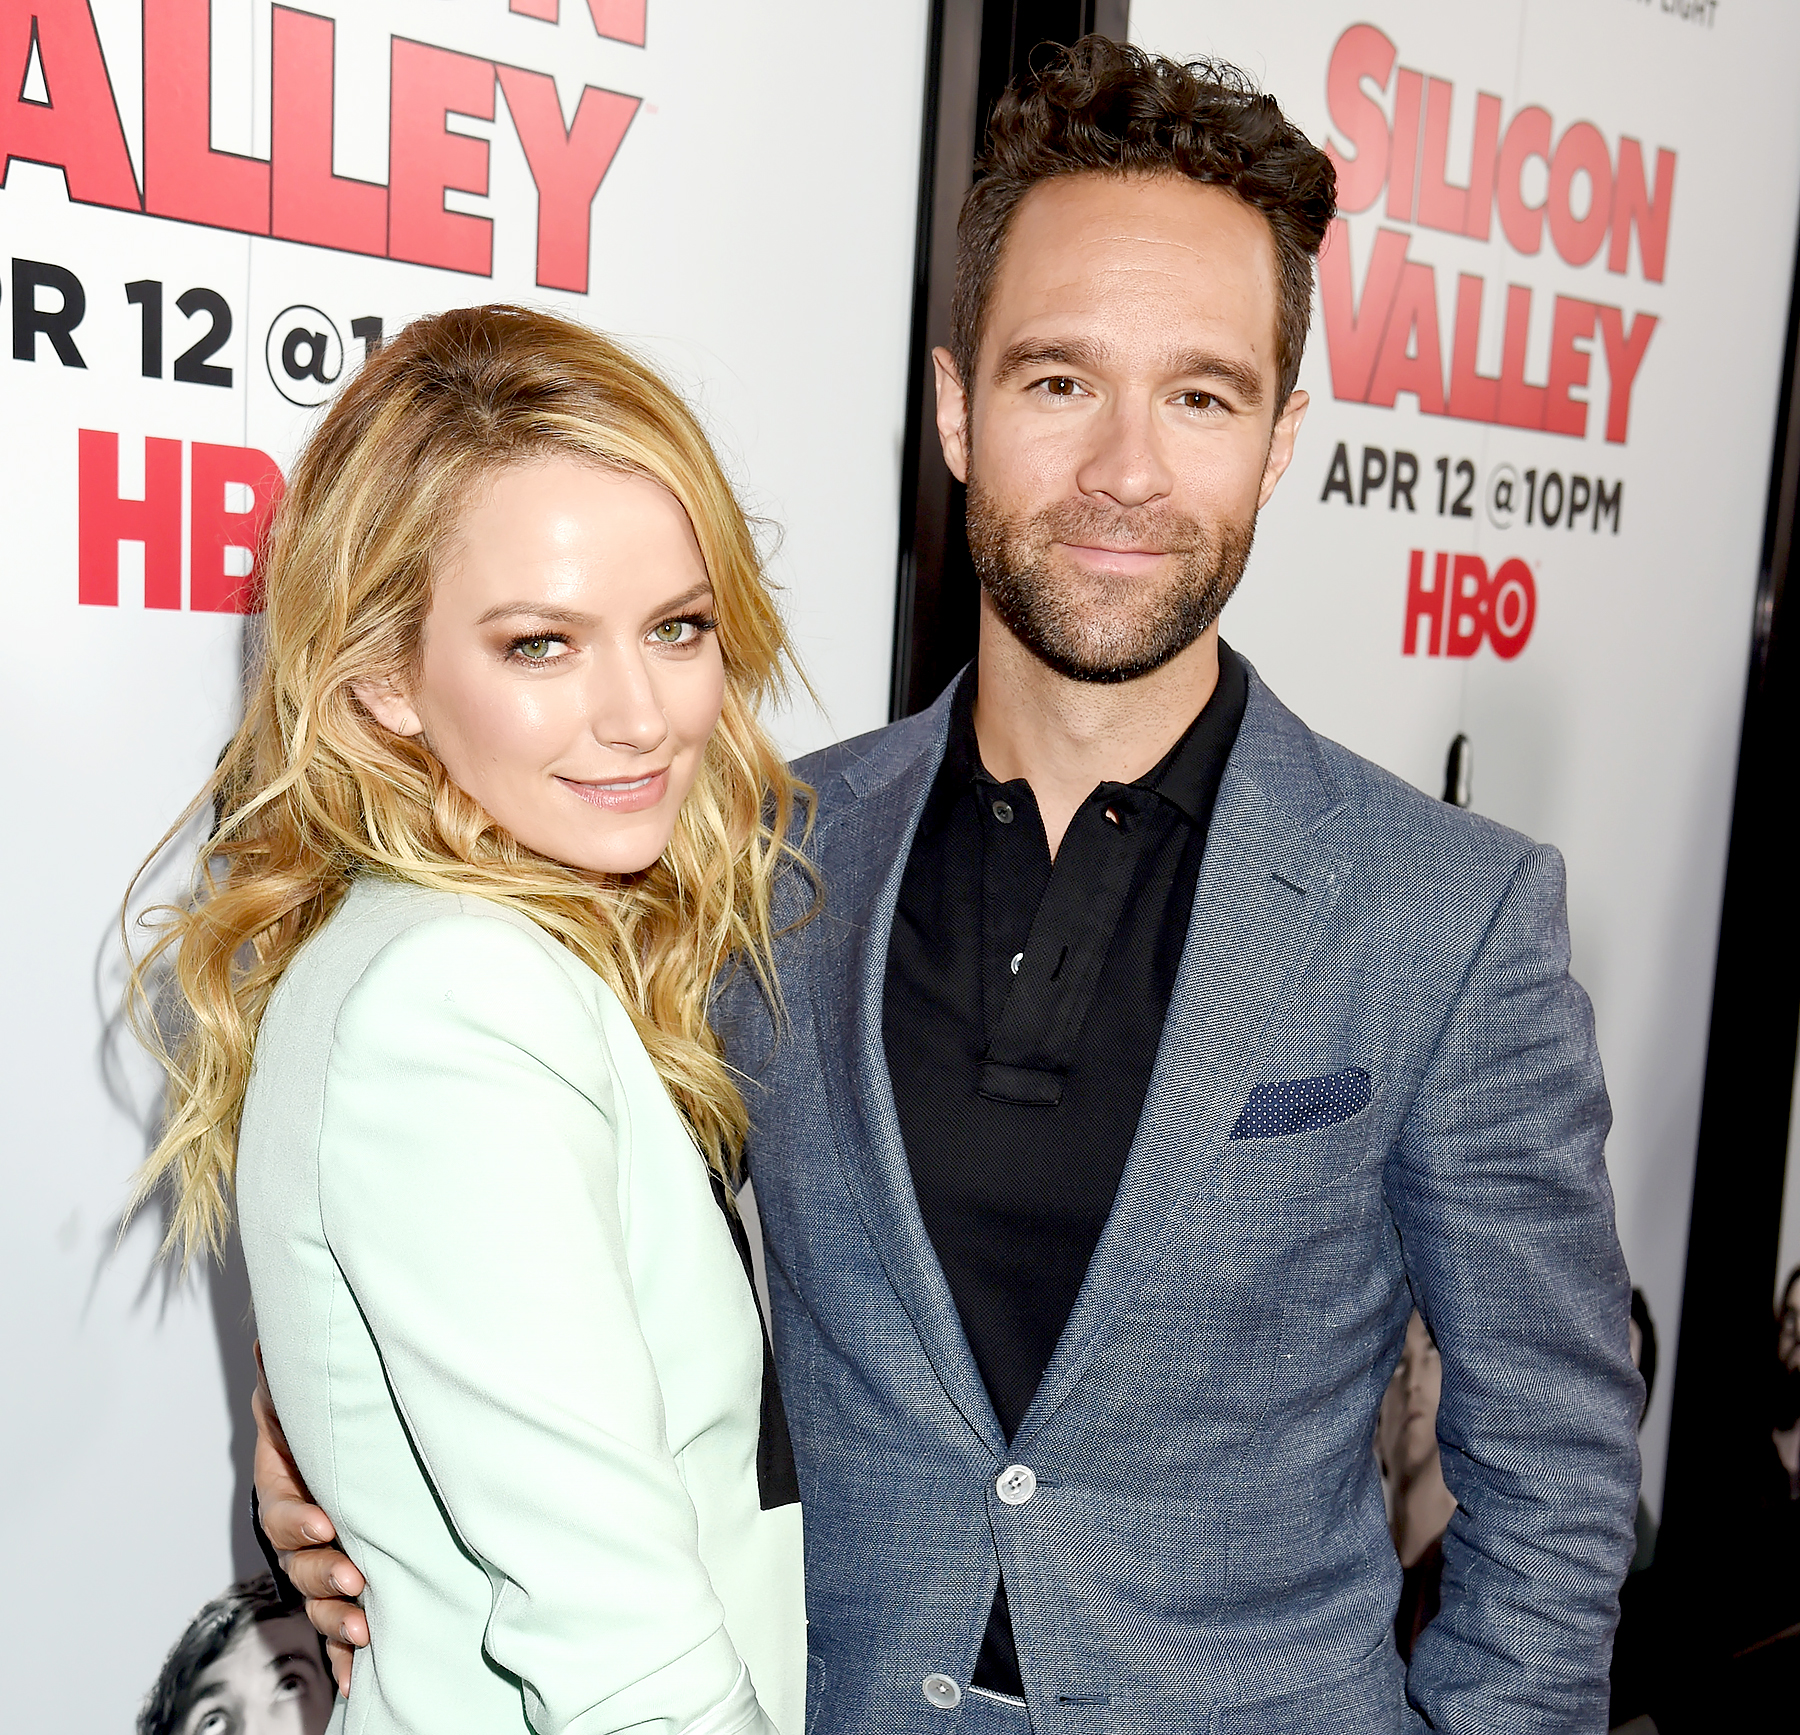 """Becki-Newton-and-Chris-Diamantopoulos - Becki Newton and Chris Diamantopoulos attend the HBO """"Silicon Valley"""" season 2 premiere and after party at the El Capitan Theatre on April 2, 2015 in Hollywood, California."""